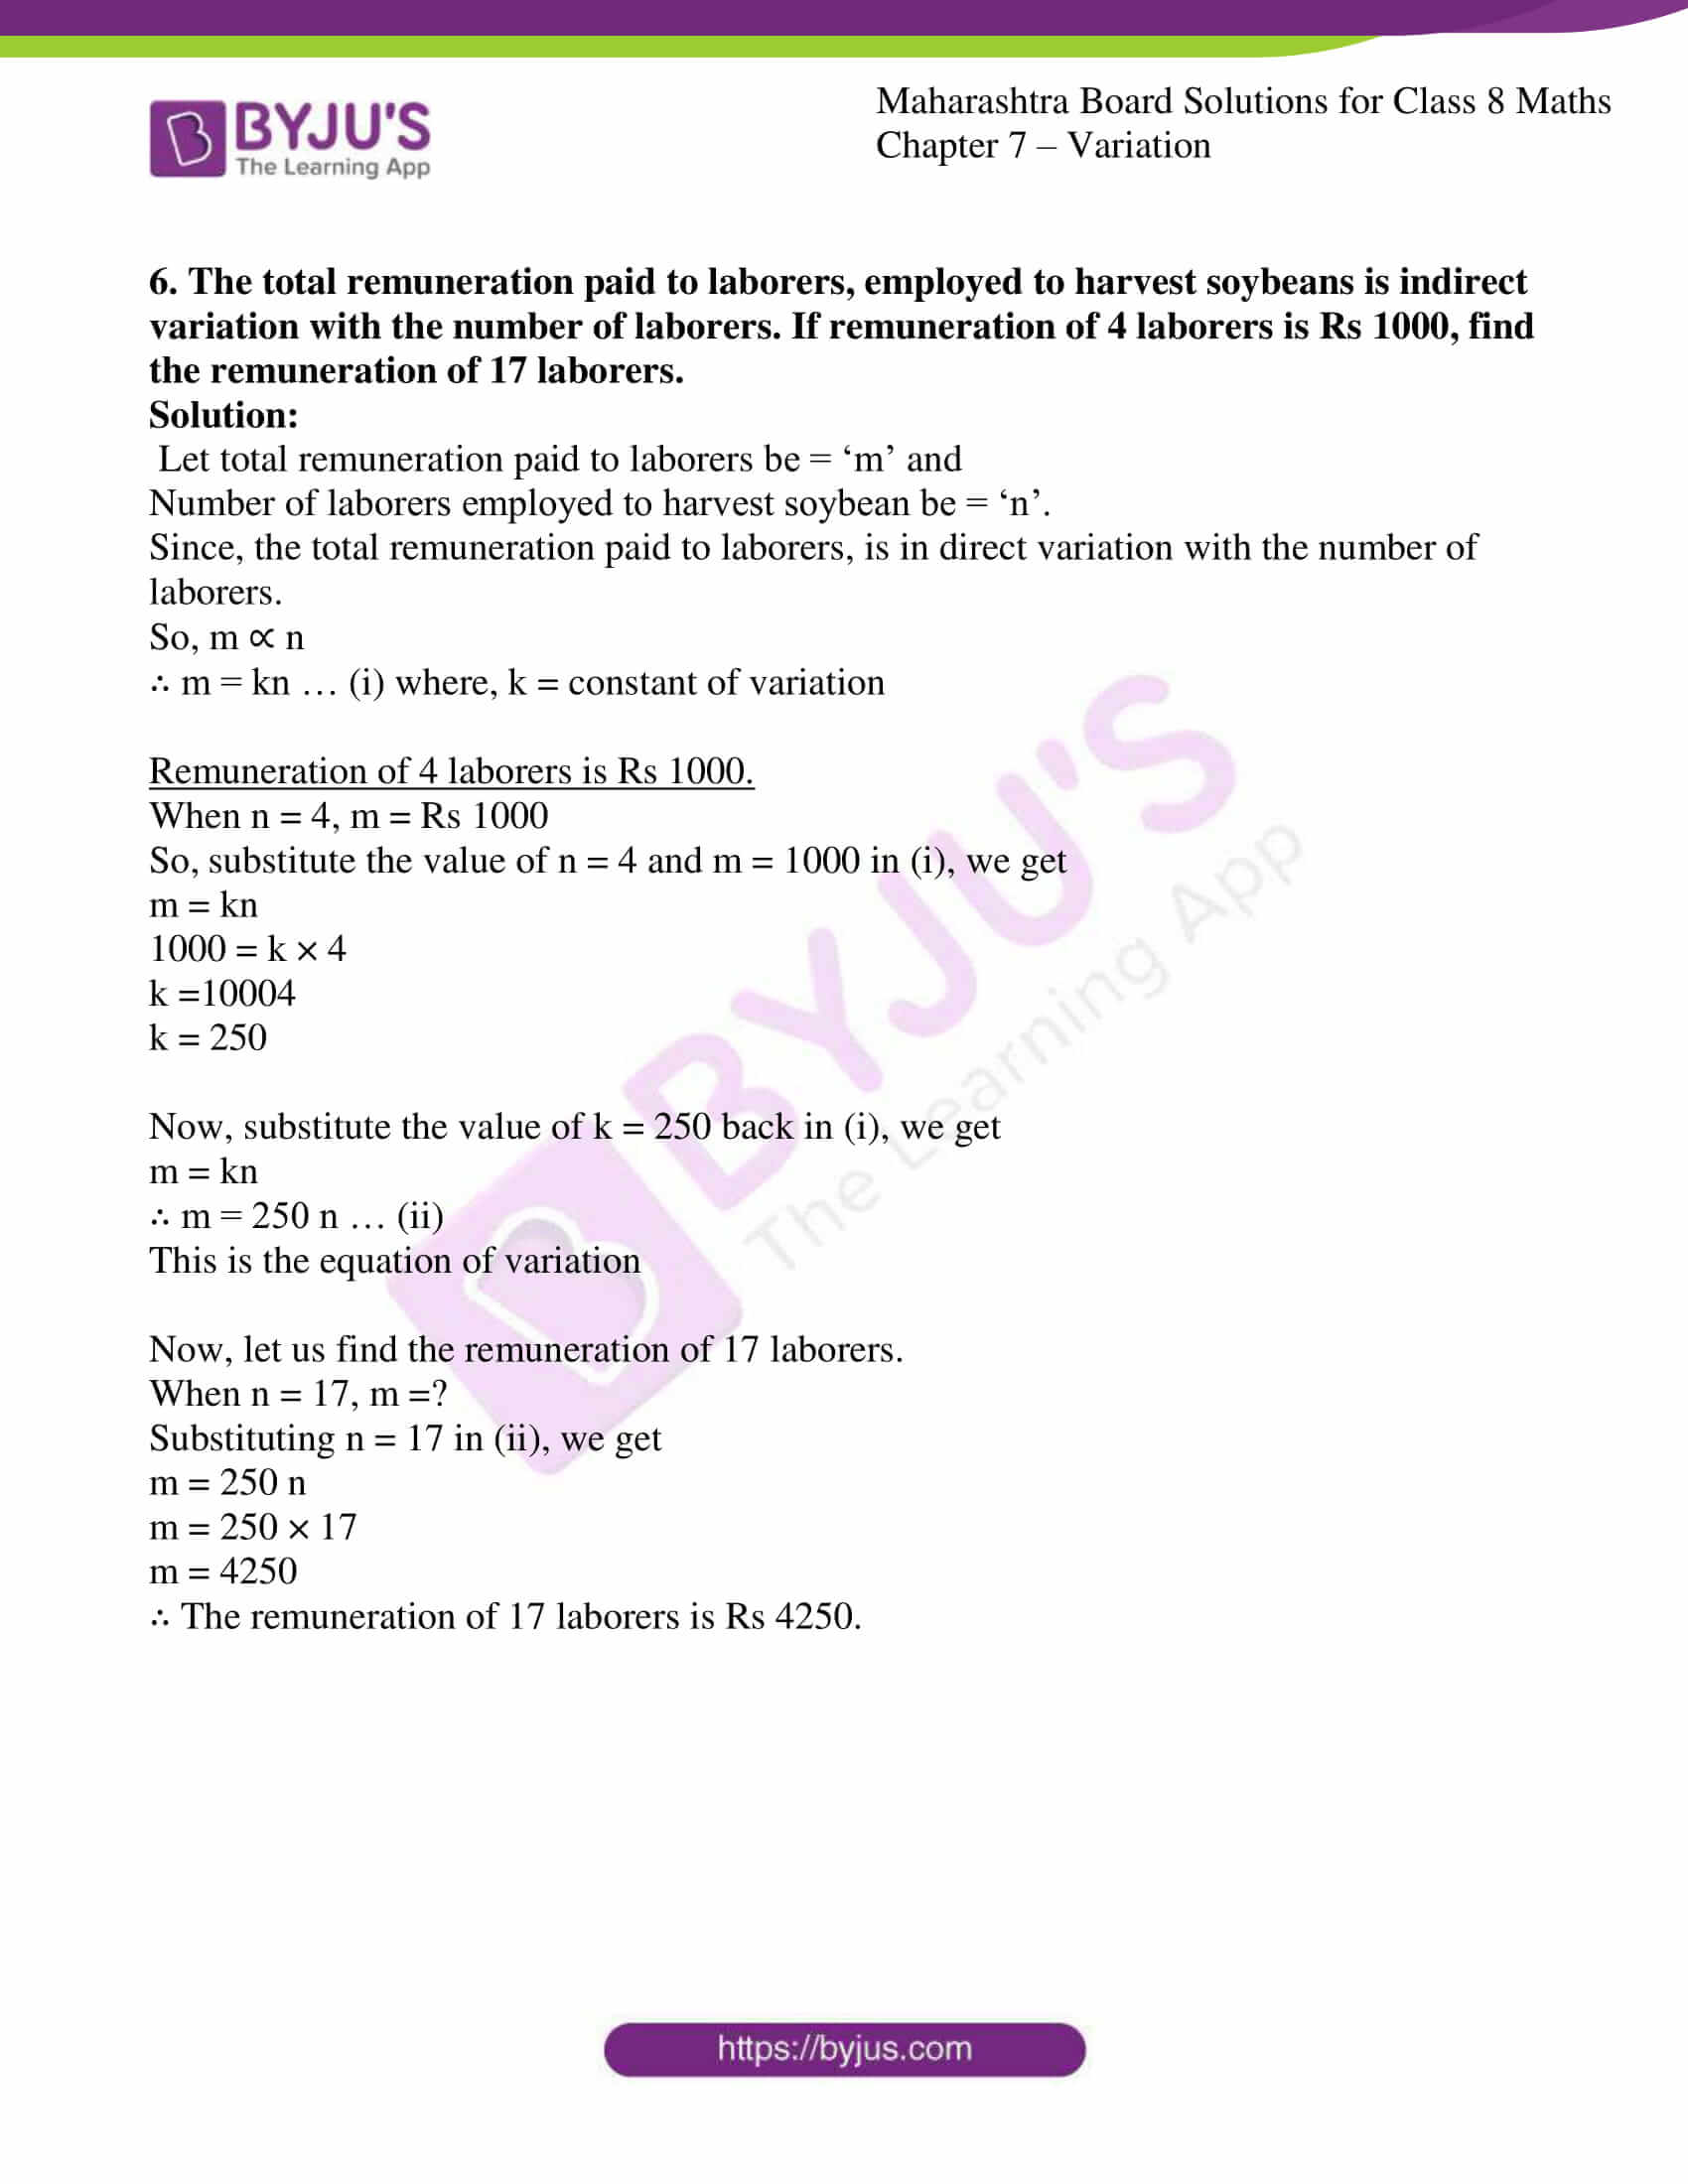 msbshse sol for class 8 maths chapter 7 05